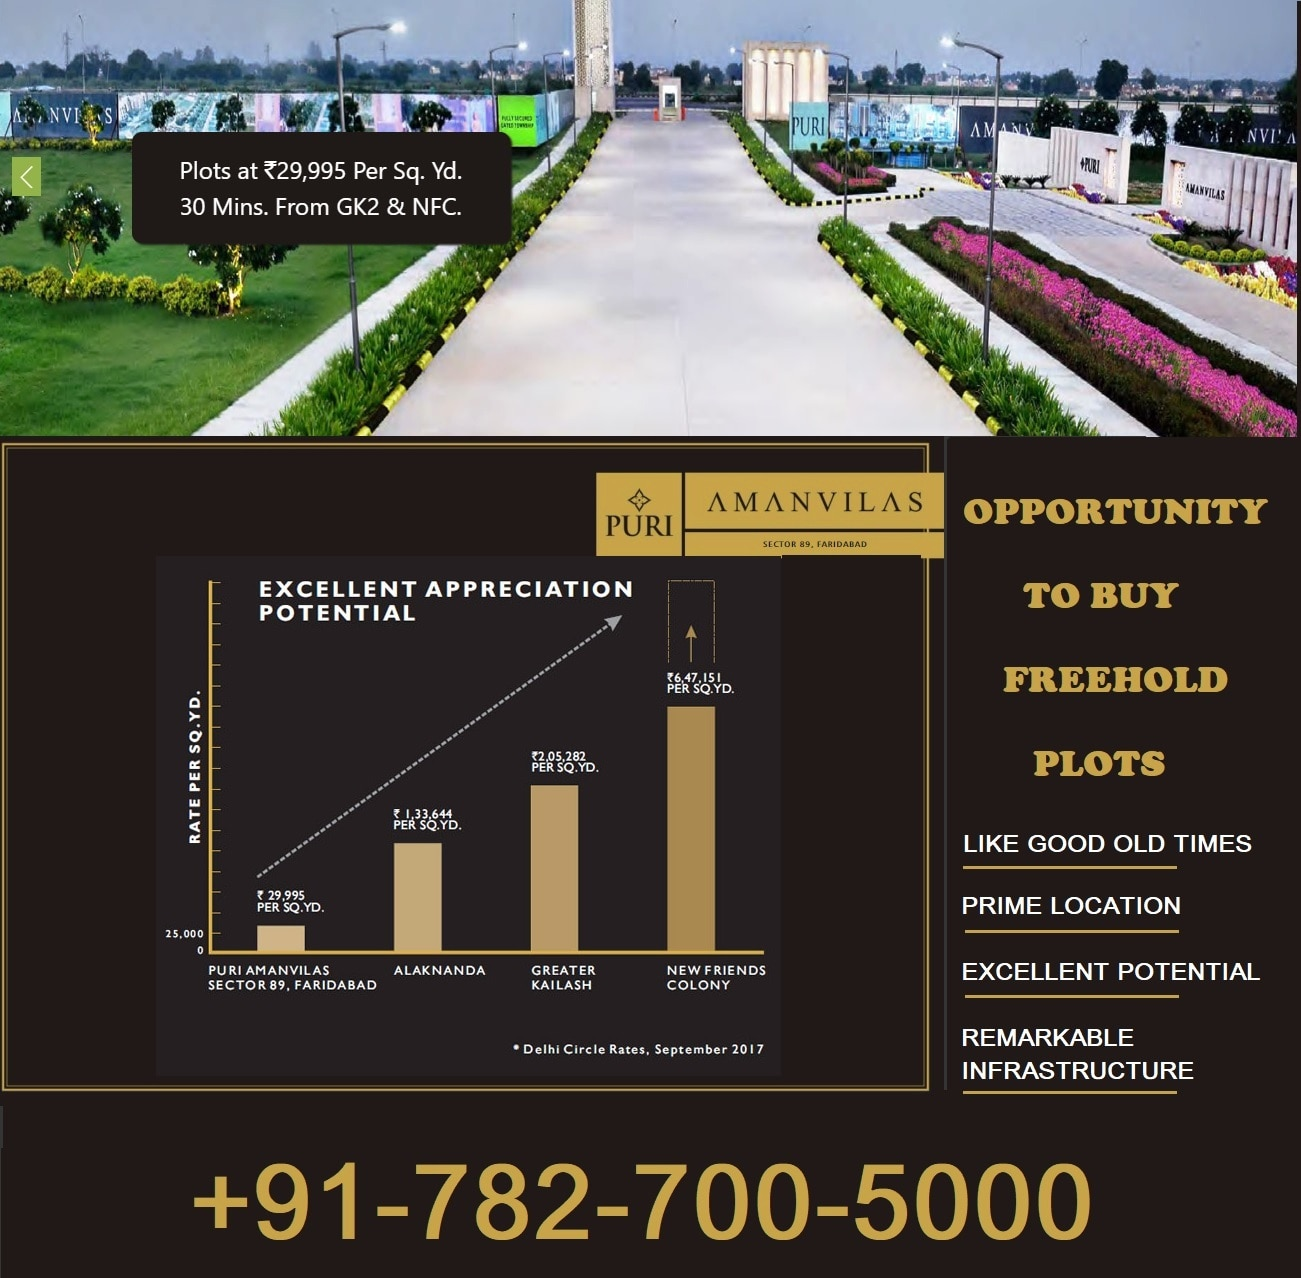 PURI CONSTRUCTIONS AMANVILAS PLOTS - JUST 30 MTS. DRIVE FROM SOUTH DELHI  ​Amanvilas Plots A fully secured gated township | Adjoining under construction 2000 bed hospital | 16 Operational schools & colleges within 5 minutes | 5 minutes from metro station | All sector roads ready | At the epicenter of Gurgaon, South Delhi and Noida  The Centre Grants Smart City Status to Faridabad 2600 Crores given to Faridabad for Smart City  Strong efforts to make Faridabad city slum-free  Robust solid waste management and storm water management system  Empowerment of the municipality to stop illegal construction, maintenance of parks, cleanliness of roads, etc.  Over 16 Schools and Colleges within 5 Minutes of Amanvilas Site Renowned schools like Sriram Millennium School, Modern School (Barakhamba Branch), Faridabad, GD Goenka, KR Mangalam, Delhi Public School, Vidya Sanskar International School, MVN, Aravali International School, Modern DPS, Shiv Nadar School etc. all within 5 minutes.  Renowned colleges like YMCA College of Engineering, CITM, Manav Rachna International University, Lingaya's University, Institute of Management & Technology, and newly developed medical & dental colleges, all within 5 minutes.  SECURED - Gated pockets in township with regulated entry and exit GATED TOWNSHIP - Spread across in planned residential blocks GREENS - Multiple pockets of parks and lawns spread throughtout 300 ACRE - Adjoining the site is a planned 300 acre green belt and close by a 500 acre site for proposed Golf Course* ECO - FRIENDLY - Solar Panels for street lights and rainwater harvesting SOCIAL AMENITIES - Open gym, Kids' play area, Swimming pool, Jogging track and ample landscaped areas ​​ Kindly contact us through mail or telephonic to avail the services according to your requirement & let us know the day & time when it will be convenient for you to visit the site so that we organise it accordingly.​